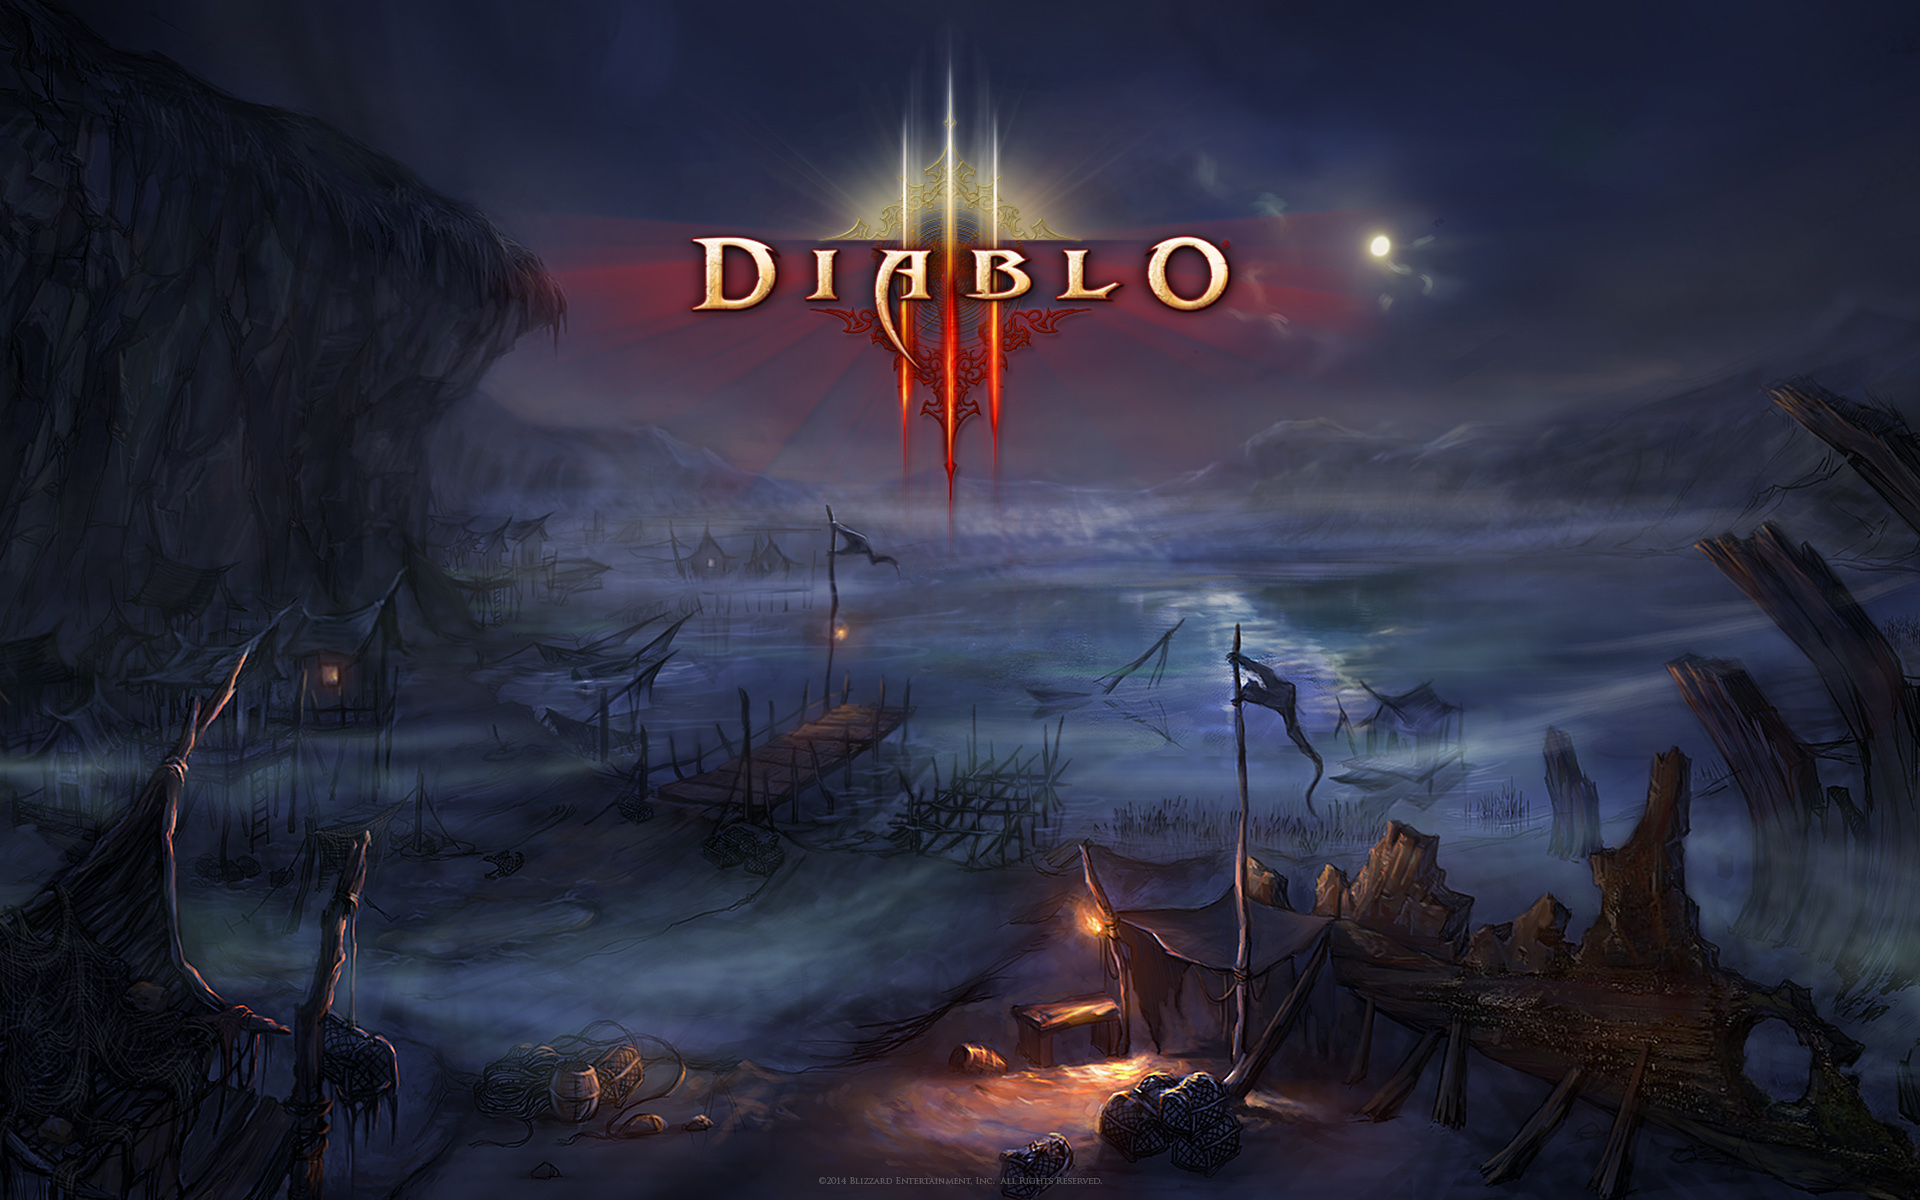 Wallpapers   Media   Diablo III 1920x1200